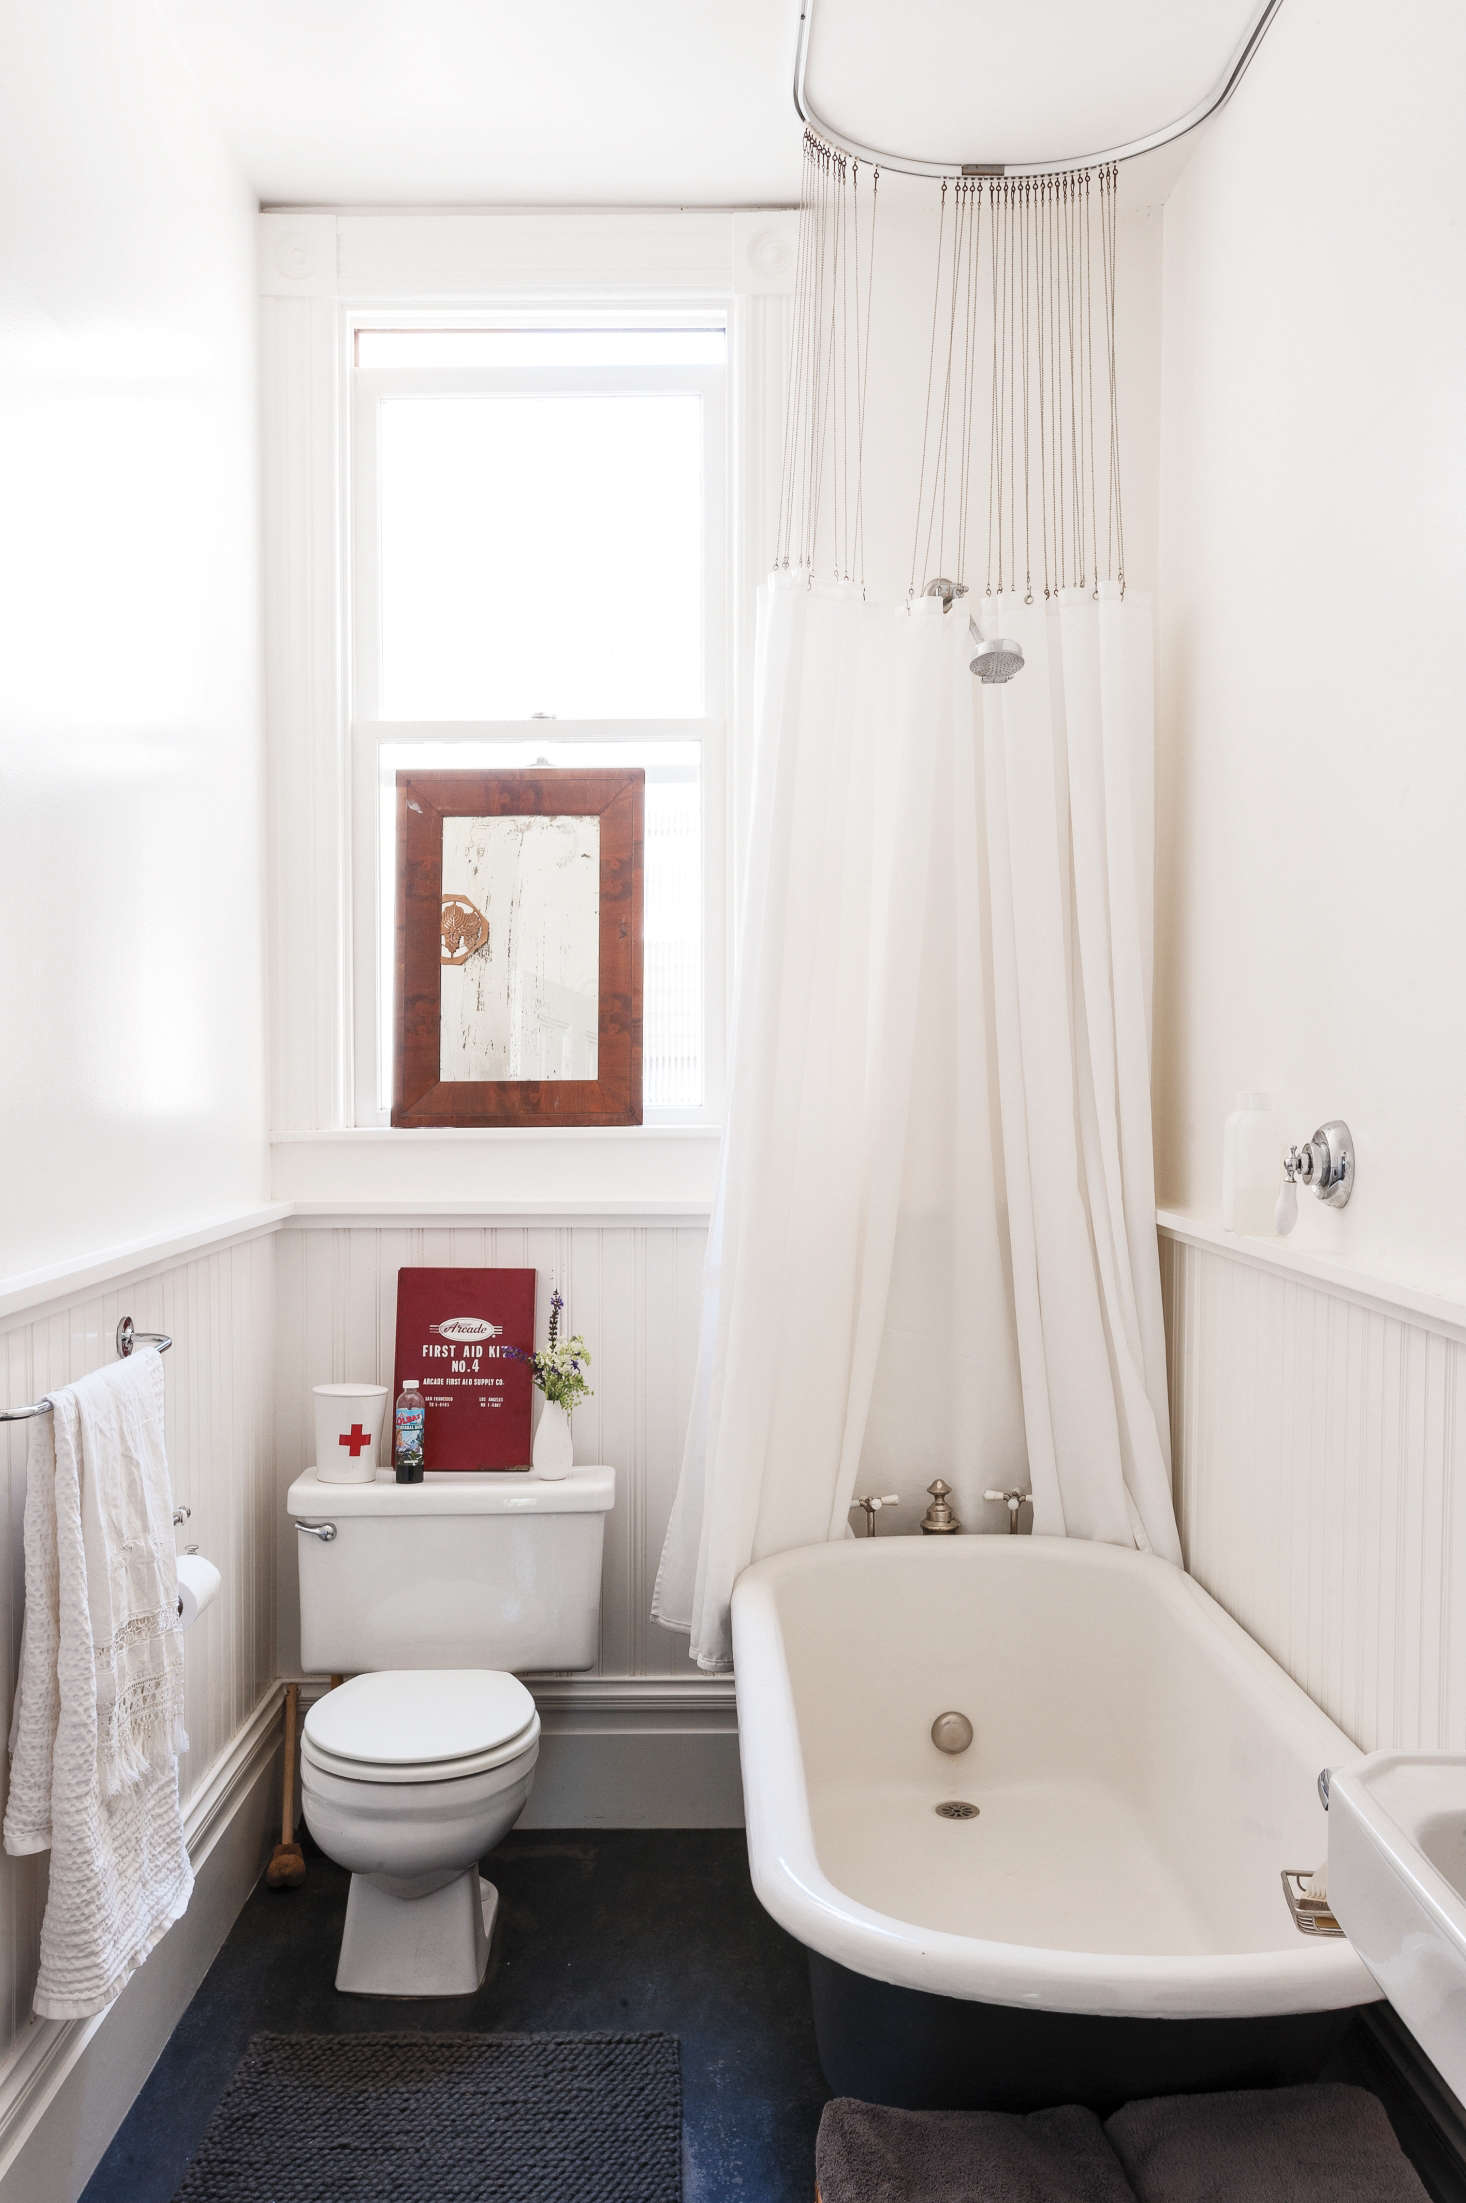 In her wee bath, clothing designer Dagmar Daley ditched her curtains, used all white to maximize the sense of light and air, and she used vertical elements, wainscoting and a shower curtain, to emphasize the height of the room. Photograph by Matthew Williams from Remodelista: A Manual for the Considered Home.